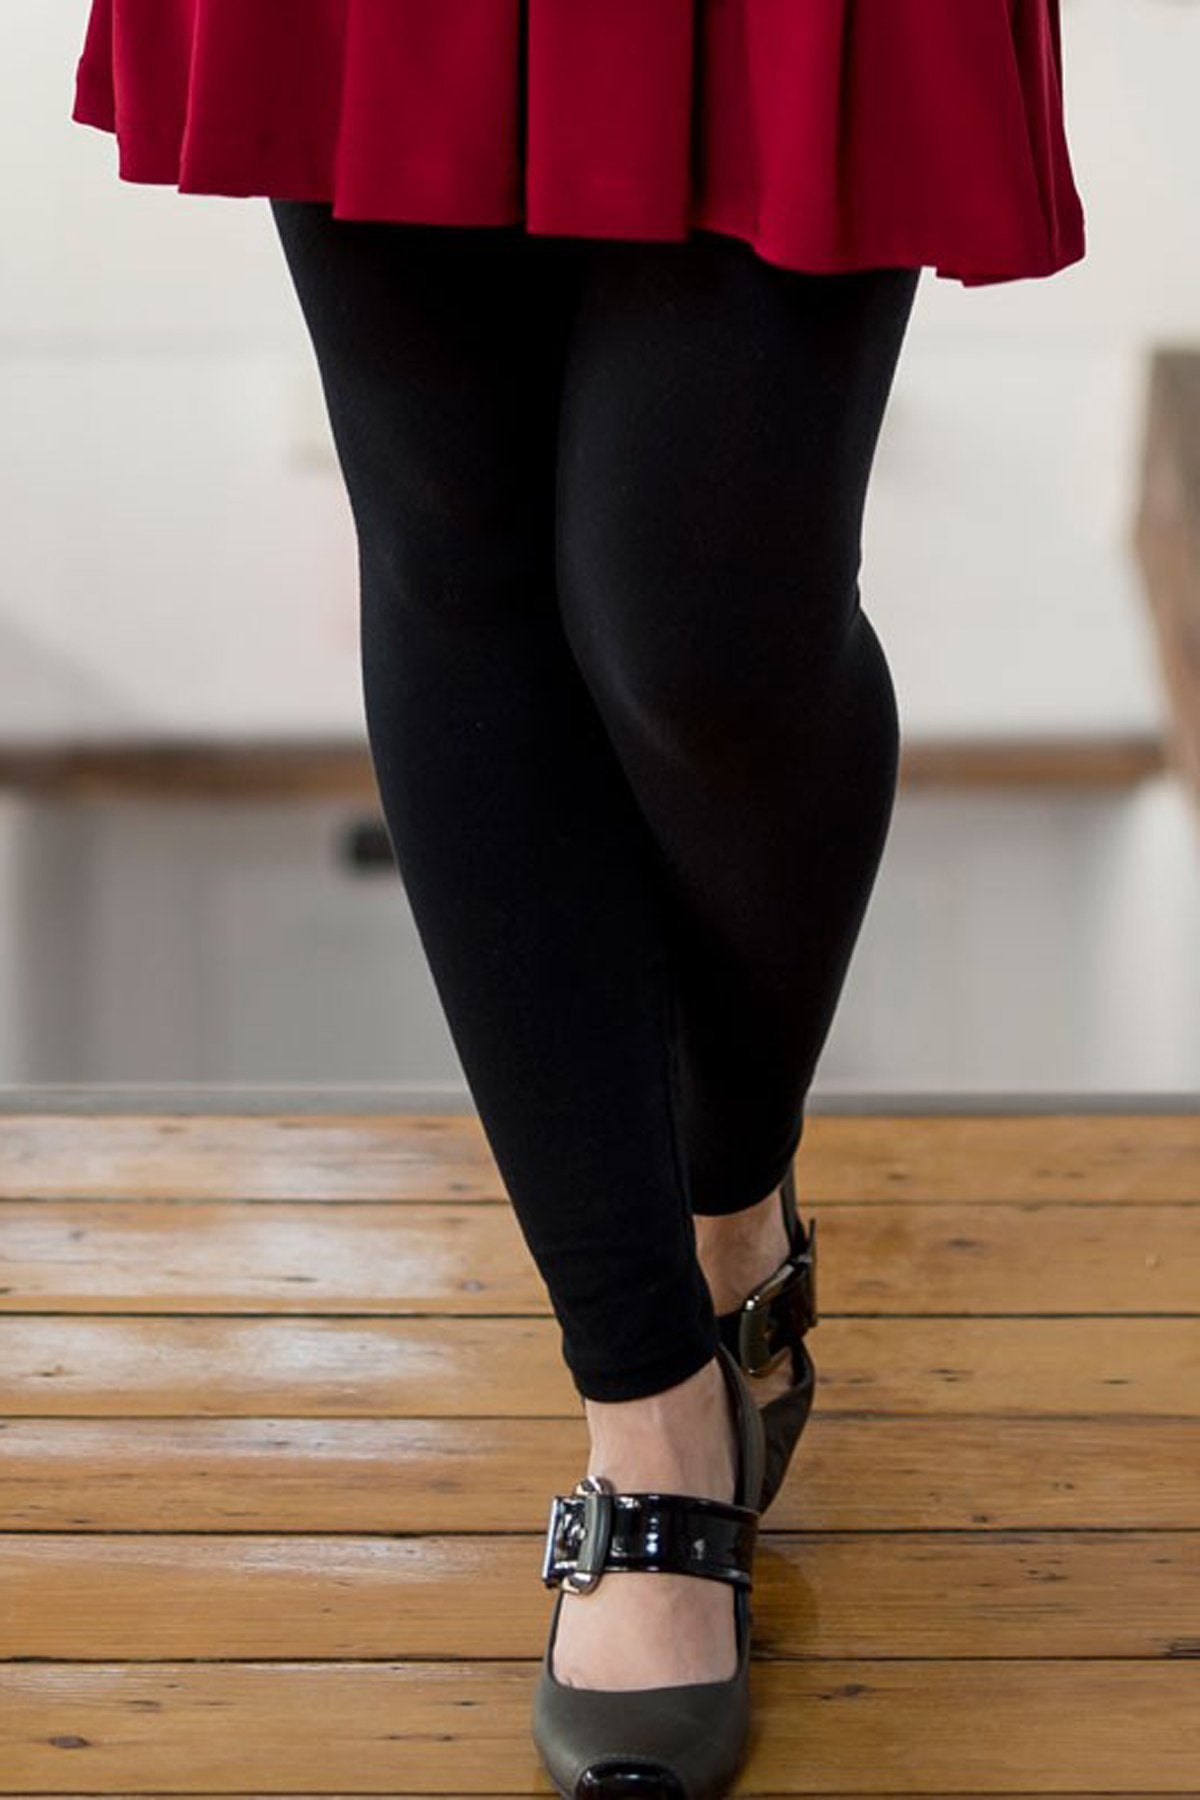 Long Uni Legging by Rien ne se Perd Tout se Cree, black, long legging, rayon and bamboo, sizes XS to XXL, made in Quebec